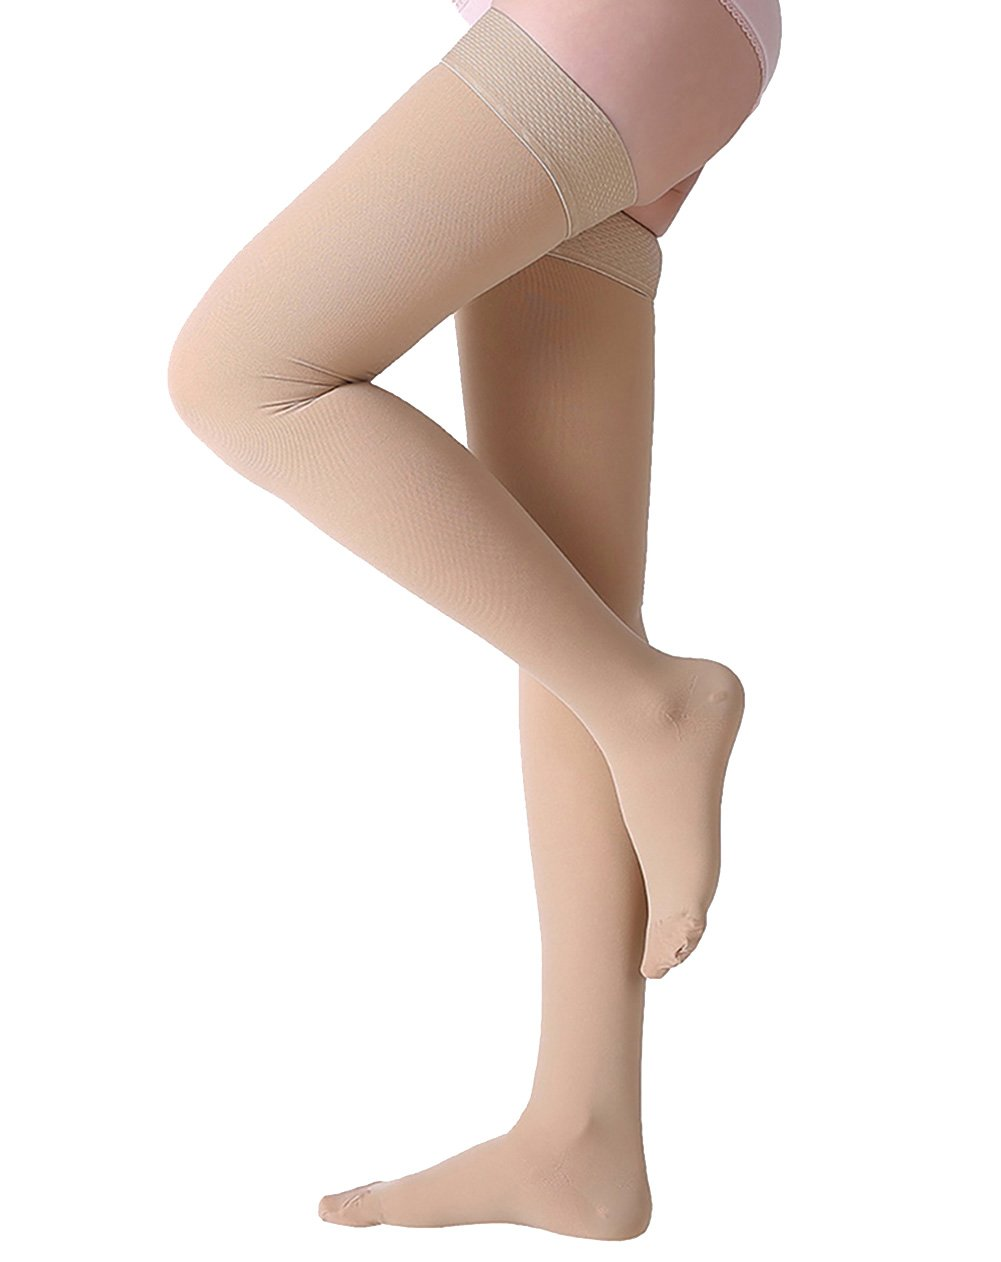 Thigh High Compression Stockings, Closed Toe, Firm Support 20-30 mmHg Gradient Compression Socks with Silicone Band, Opaque, Best for Treatment Swelling, Varicose Veins, Edema, Pregnancy, Beige M by MGANG (Image #1)